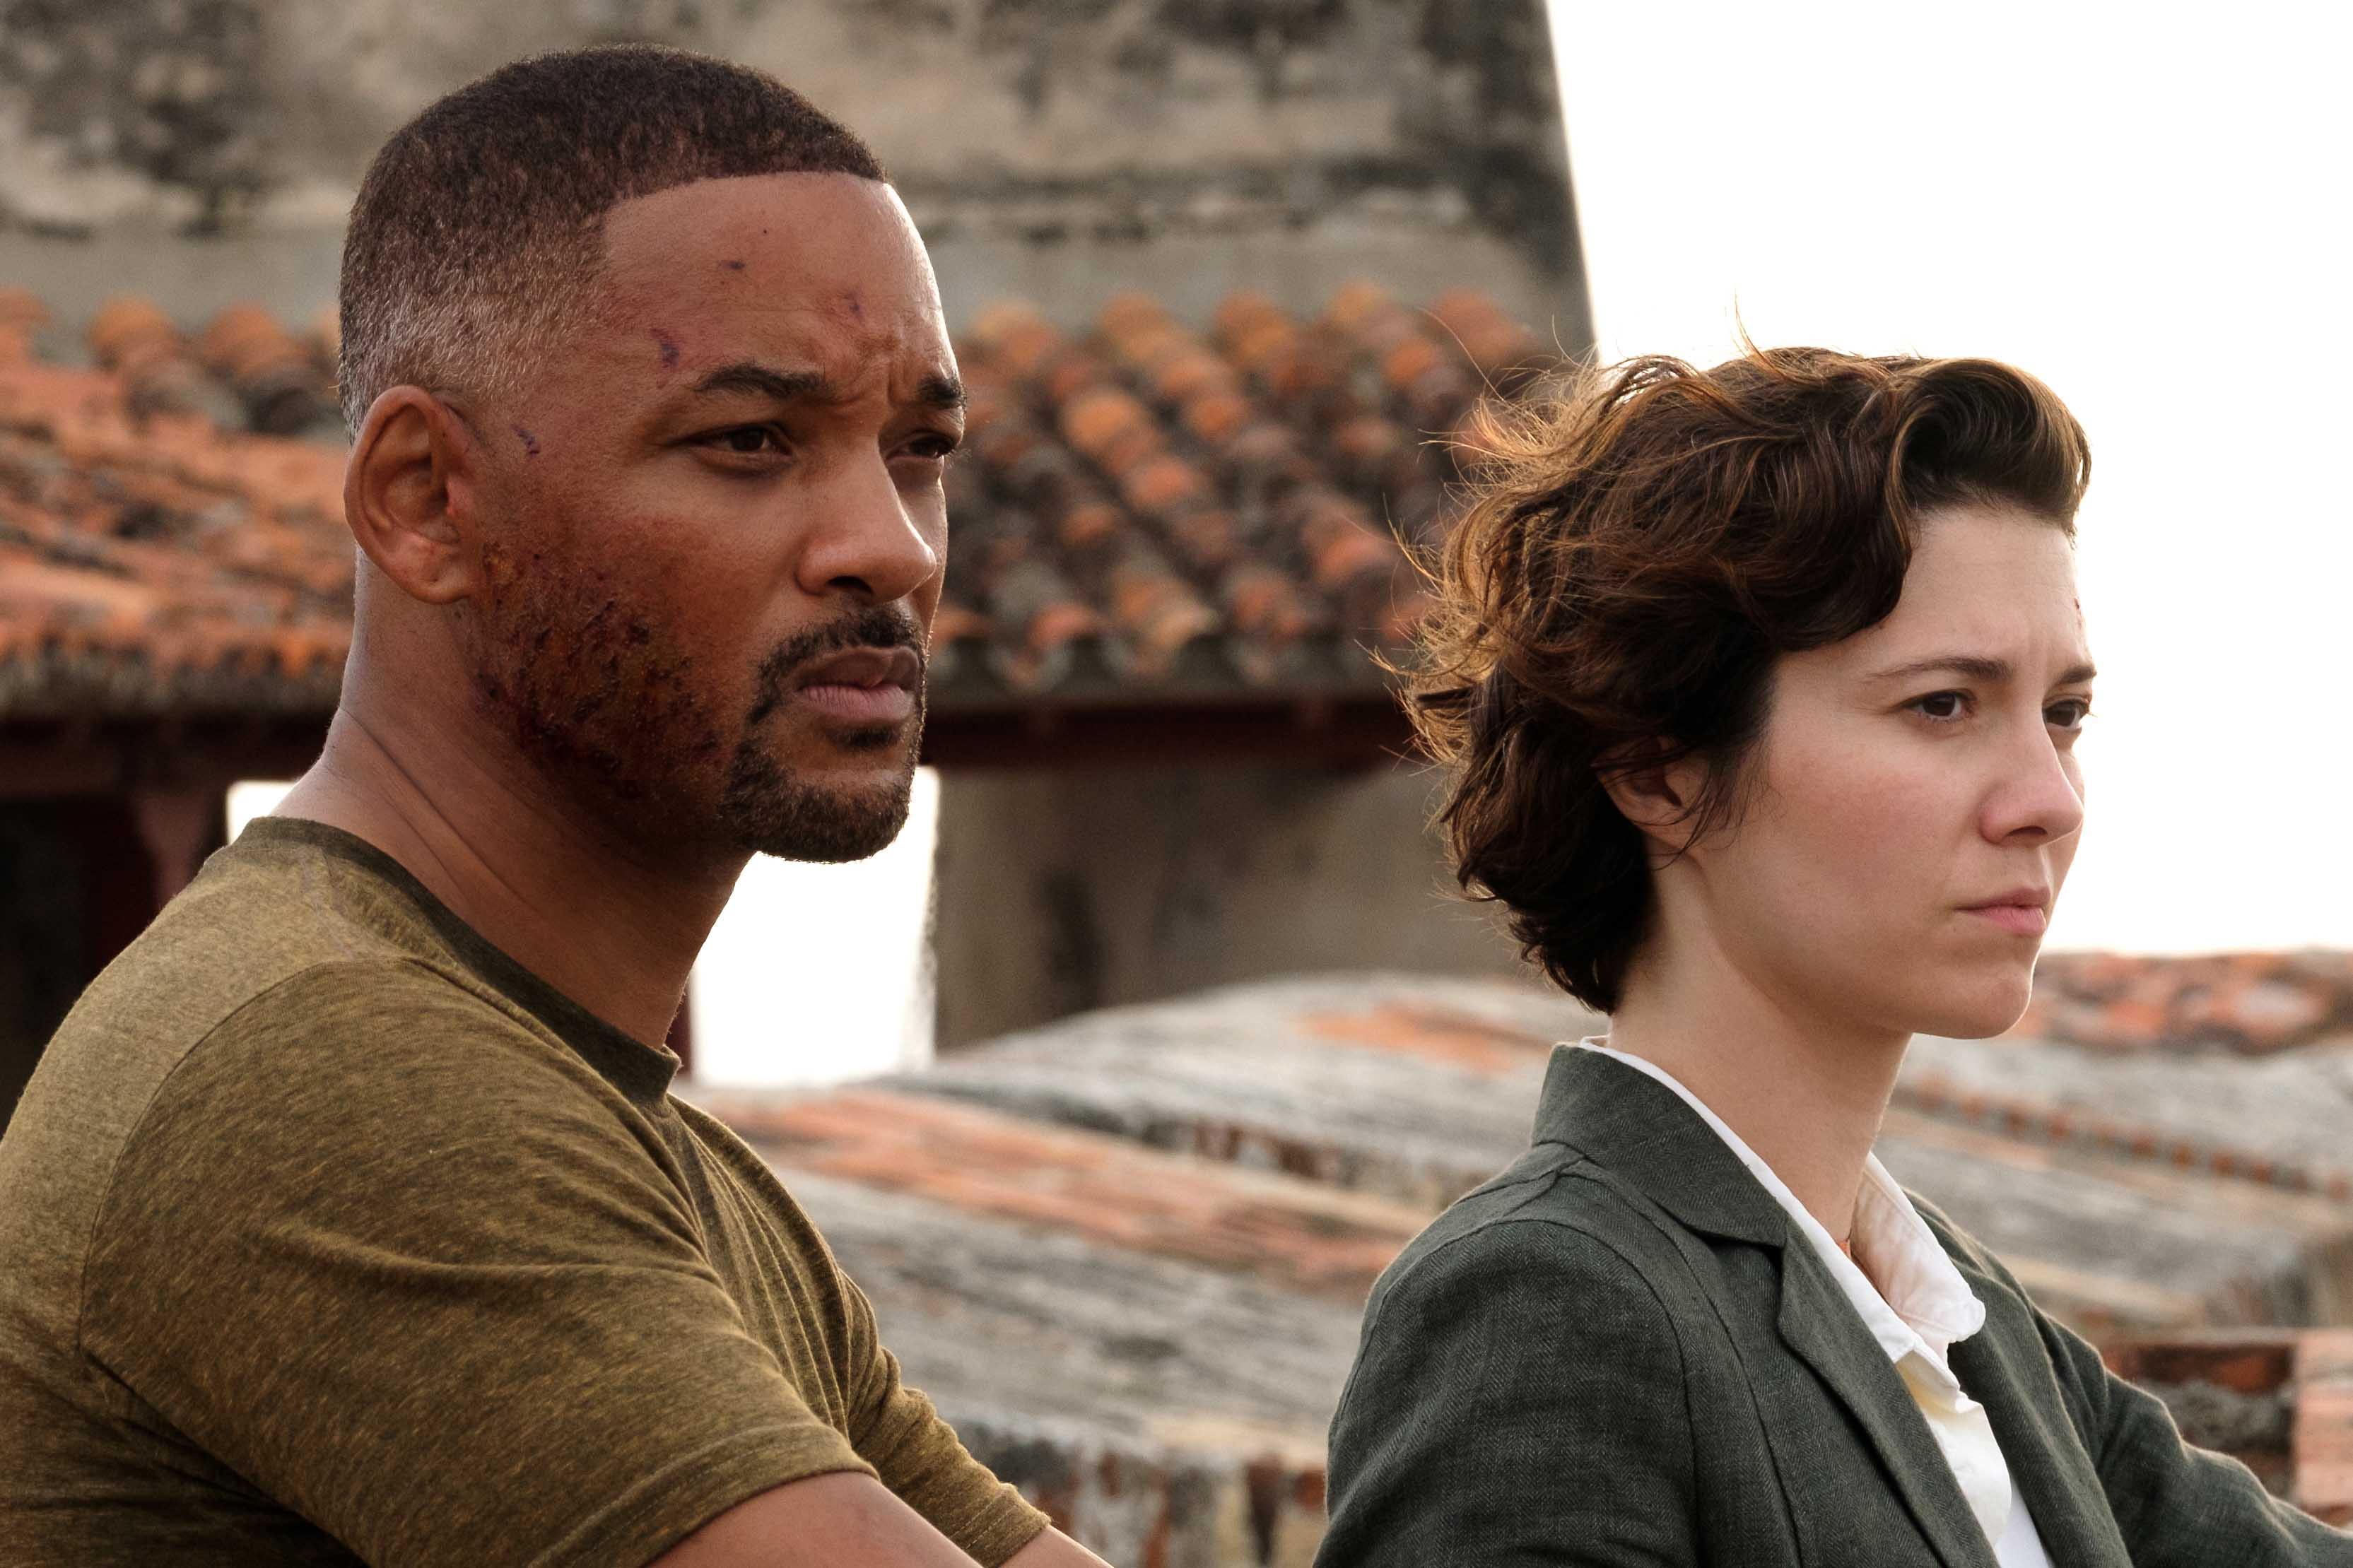 Will Smith and Mary Elizabeth Winstead star in a scene from the movie